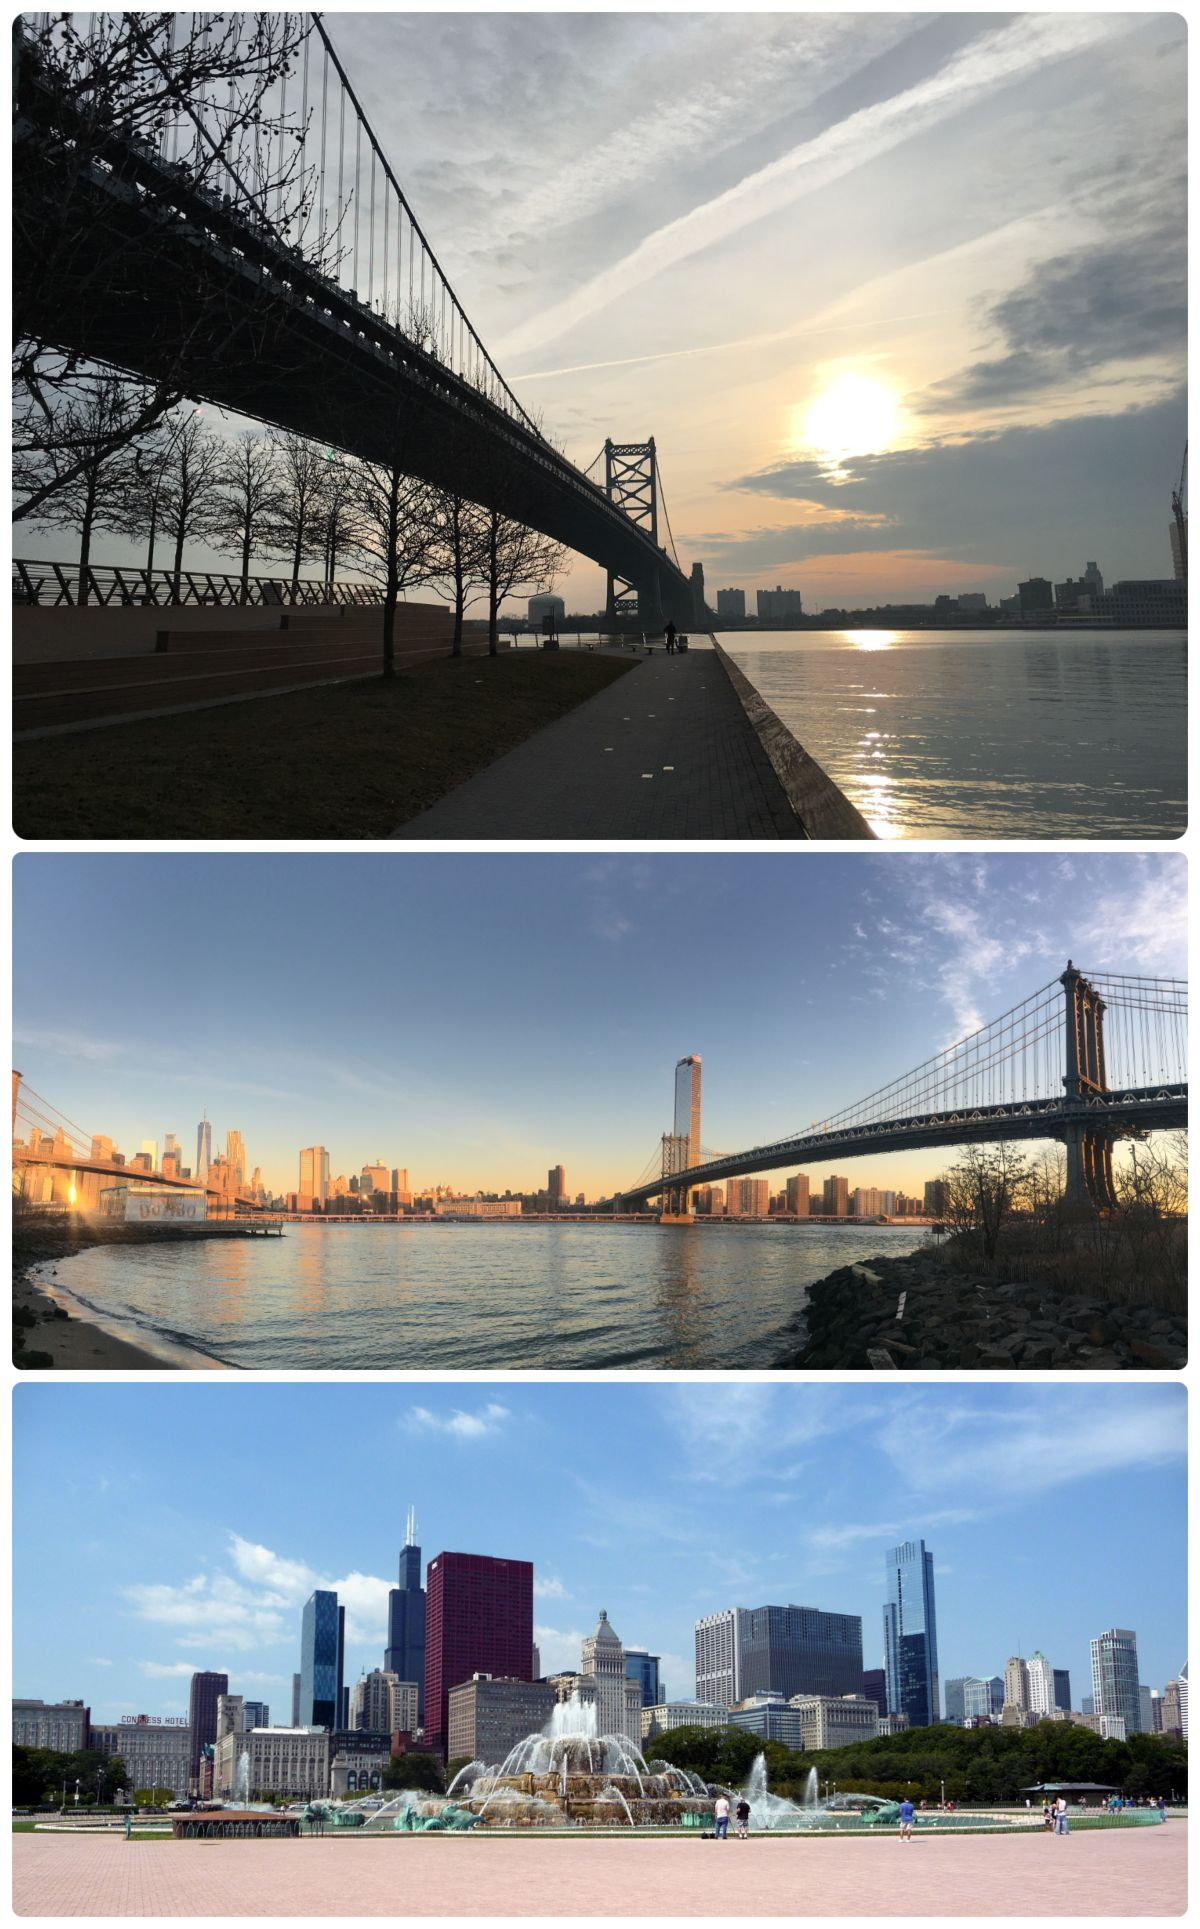 Top: New York City skyline taken from Brooklyn (DUMBO). Middle: Philadelphia (Camden, New Jersey in the background) and the Ben Franklin Bridge over the Delaware River. Bottom: Chicago's Buckingham Fountain.